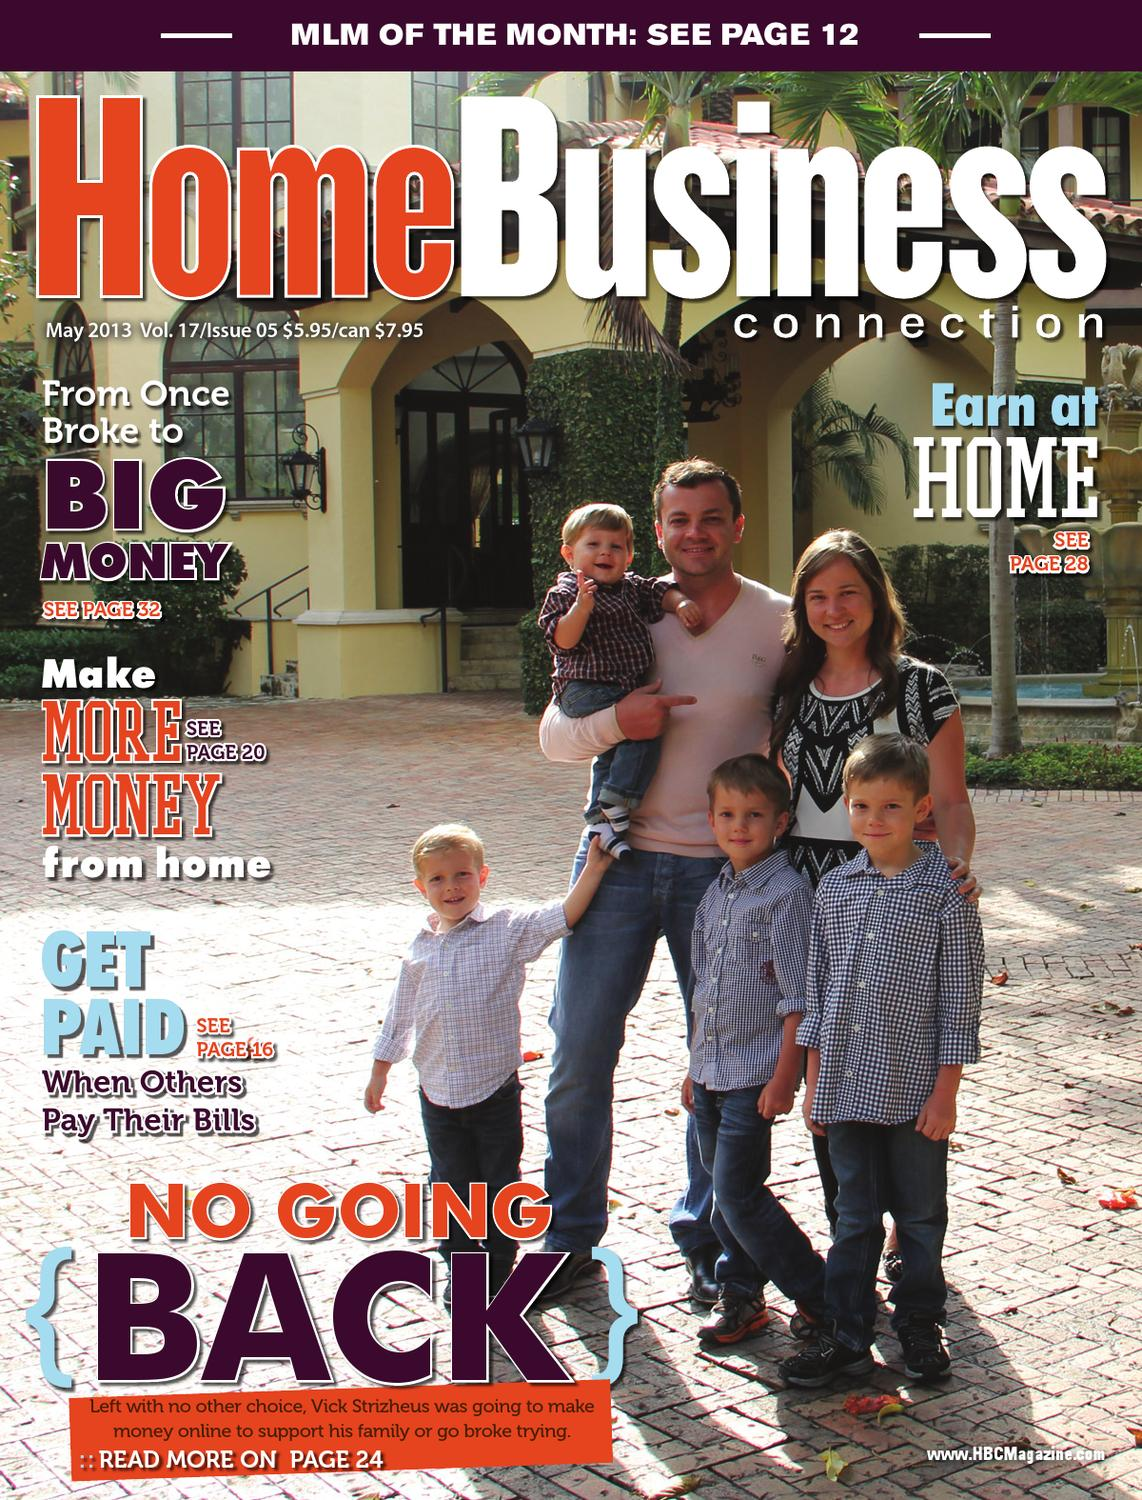 Home Business Connection Magazine  May 2013 by Cutting Edge Media  Issuu